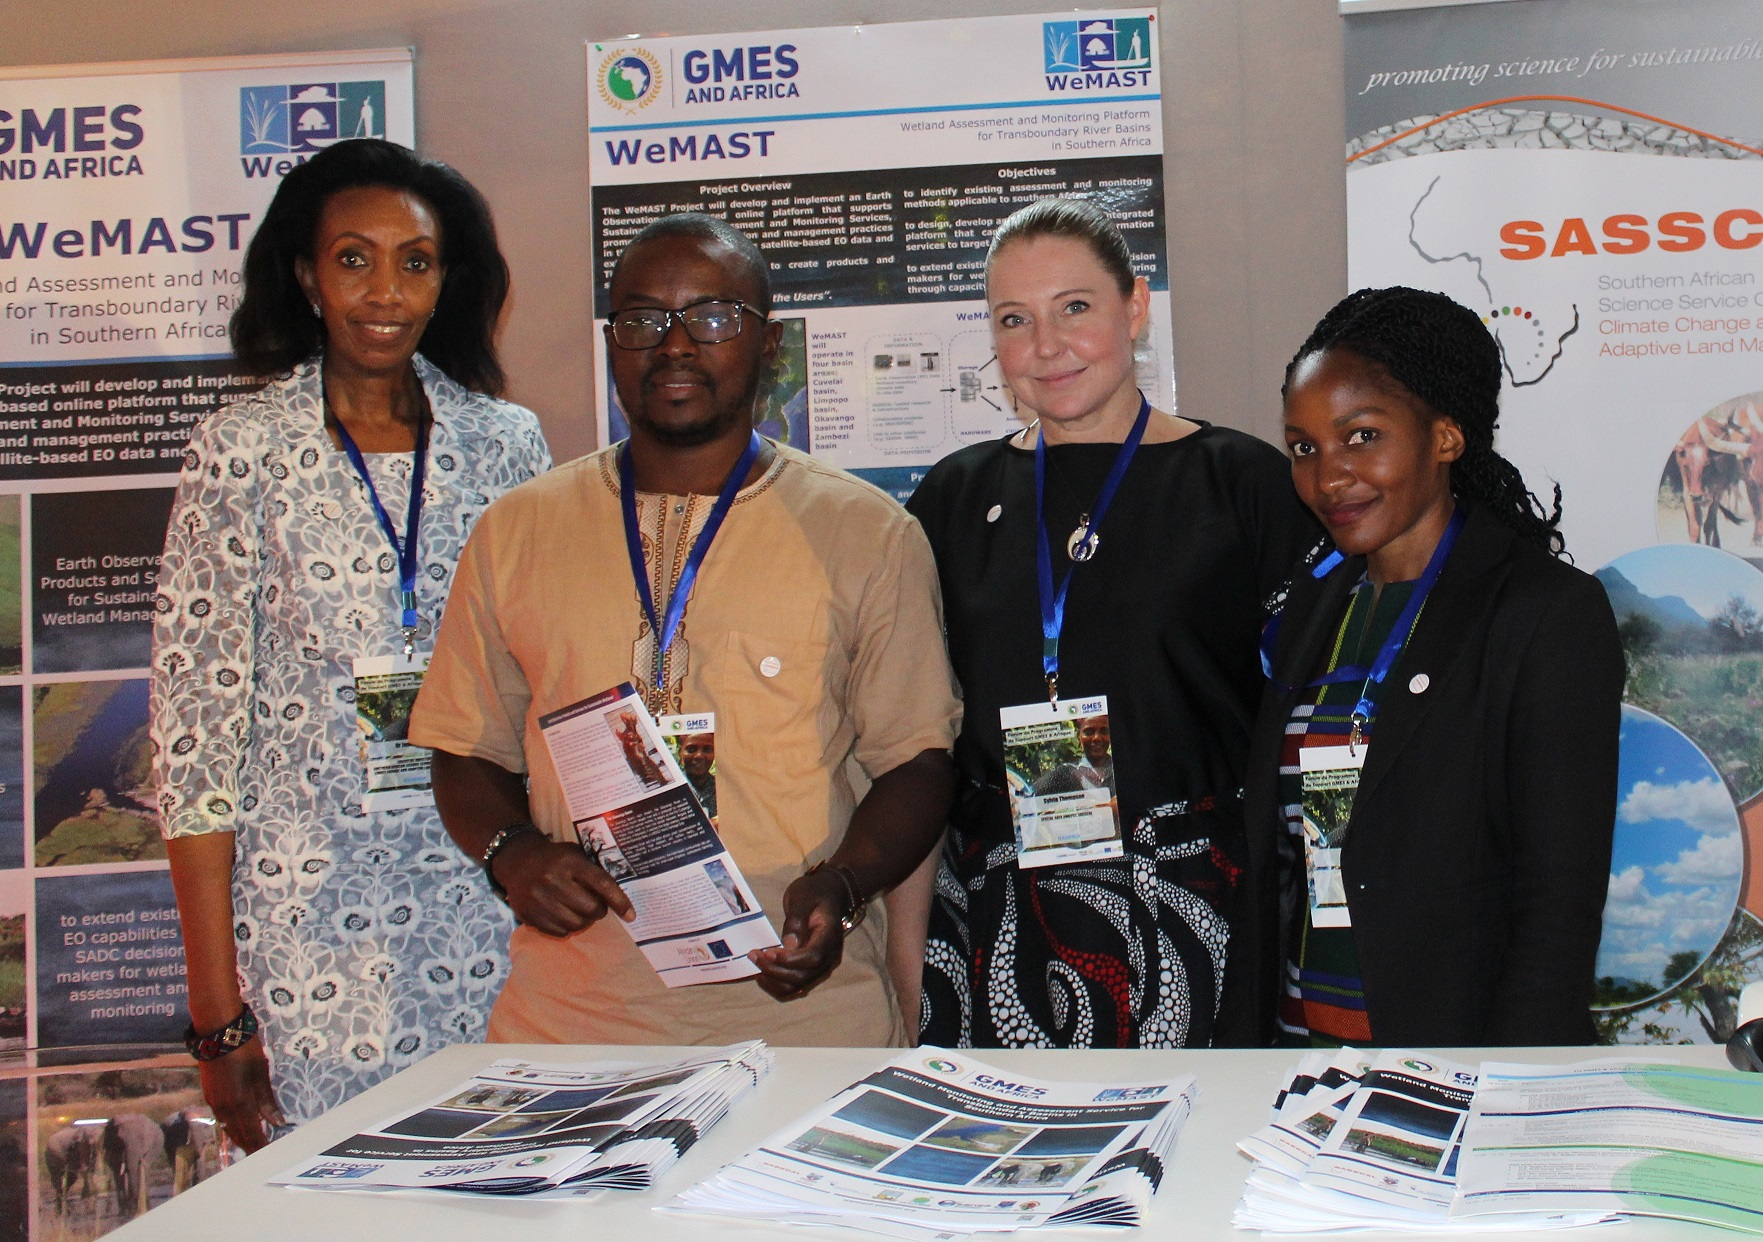 WeMAST exhibit launched at 1st Forum of the GMES & Africa Support Programme